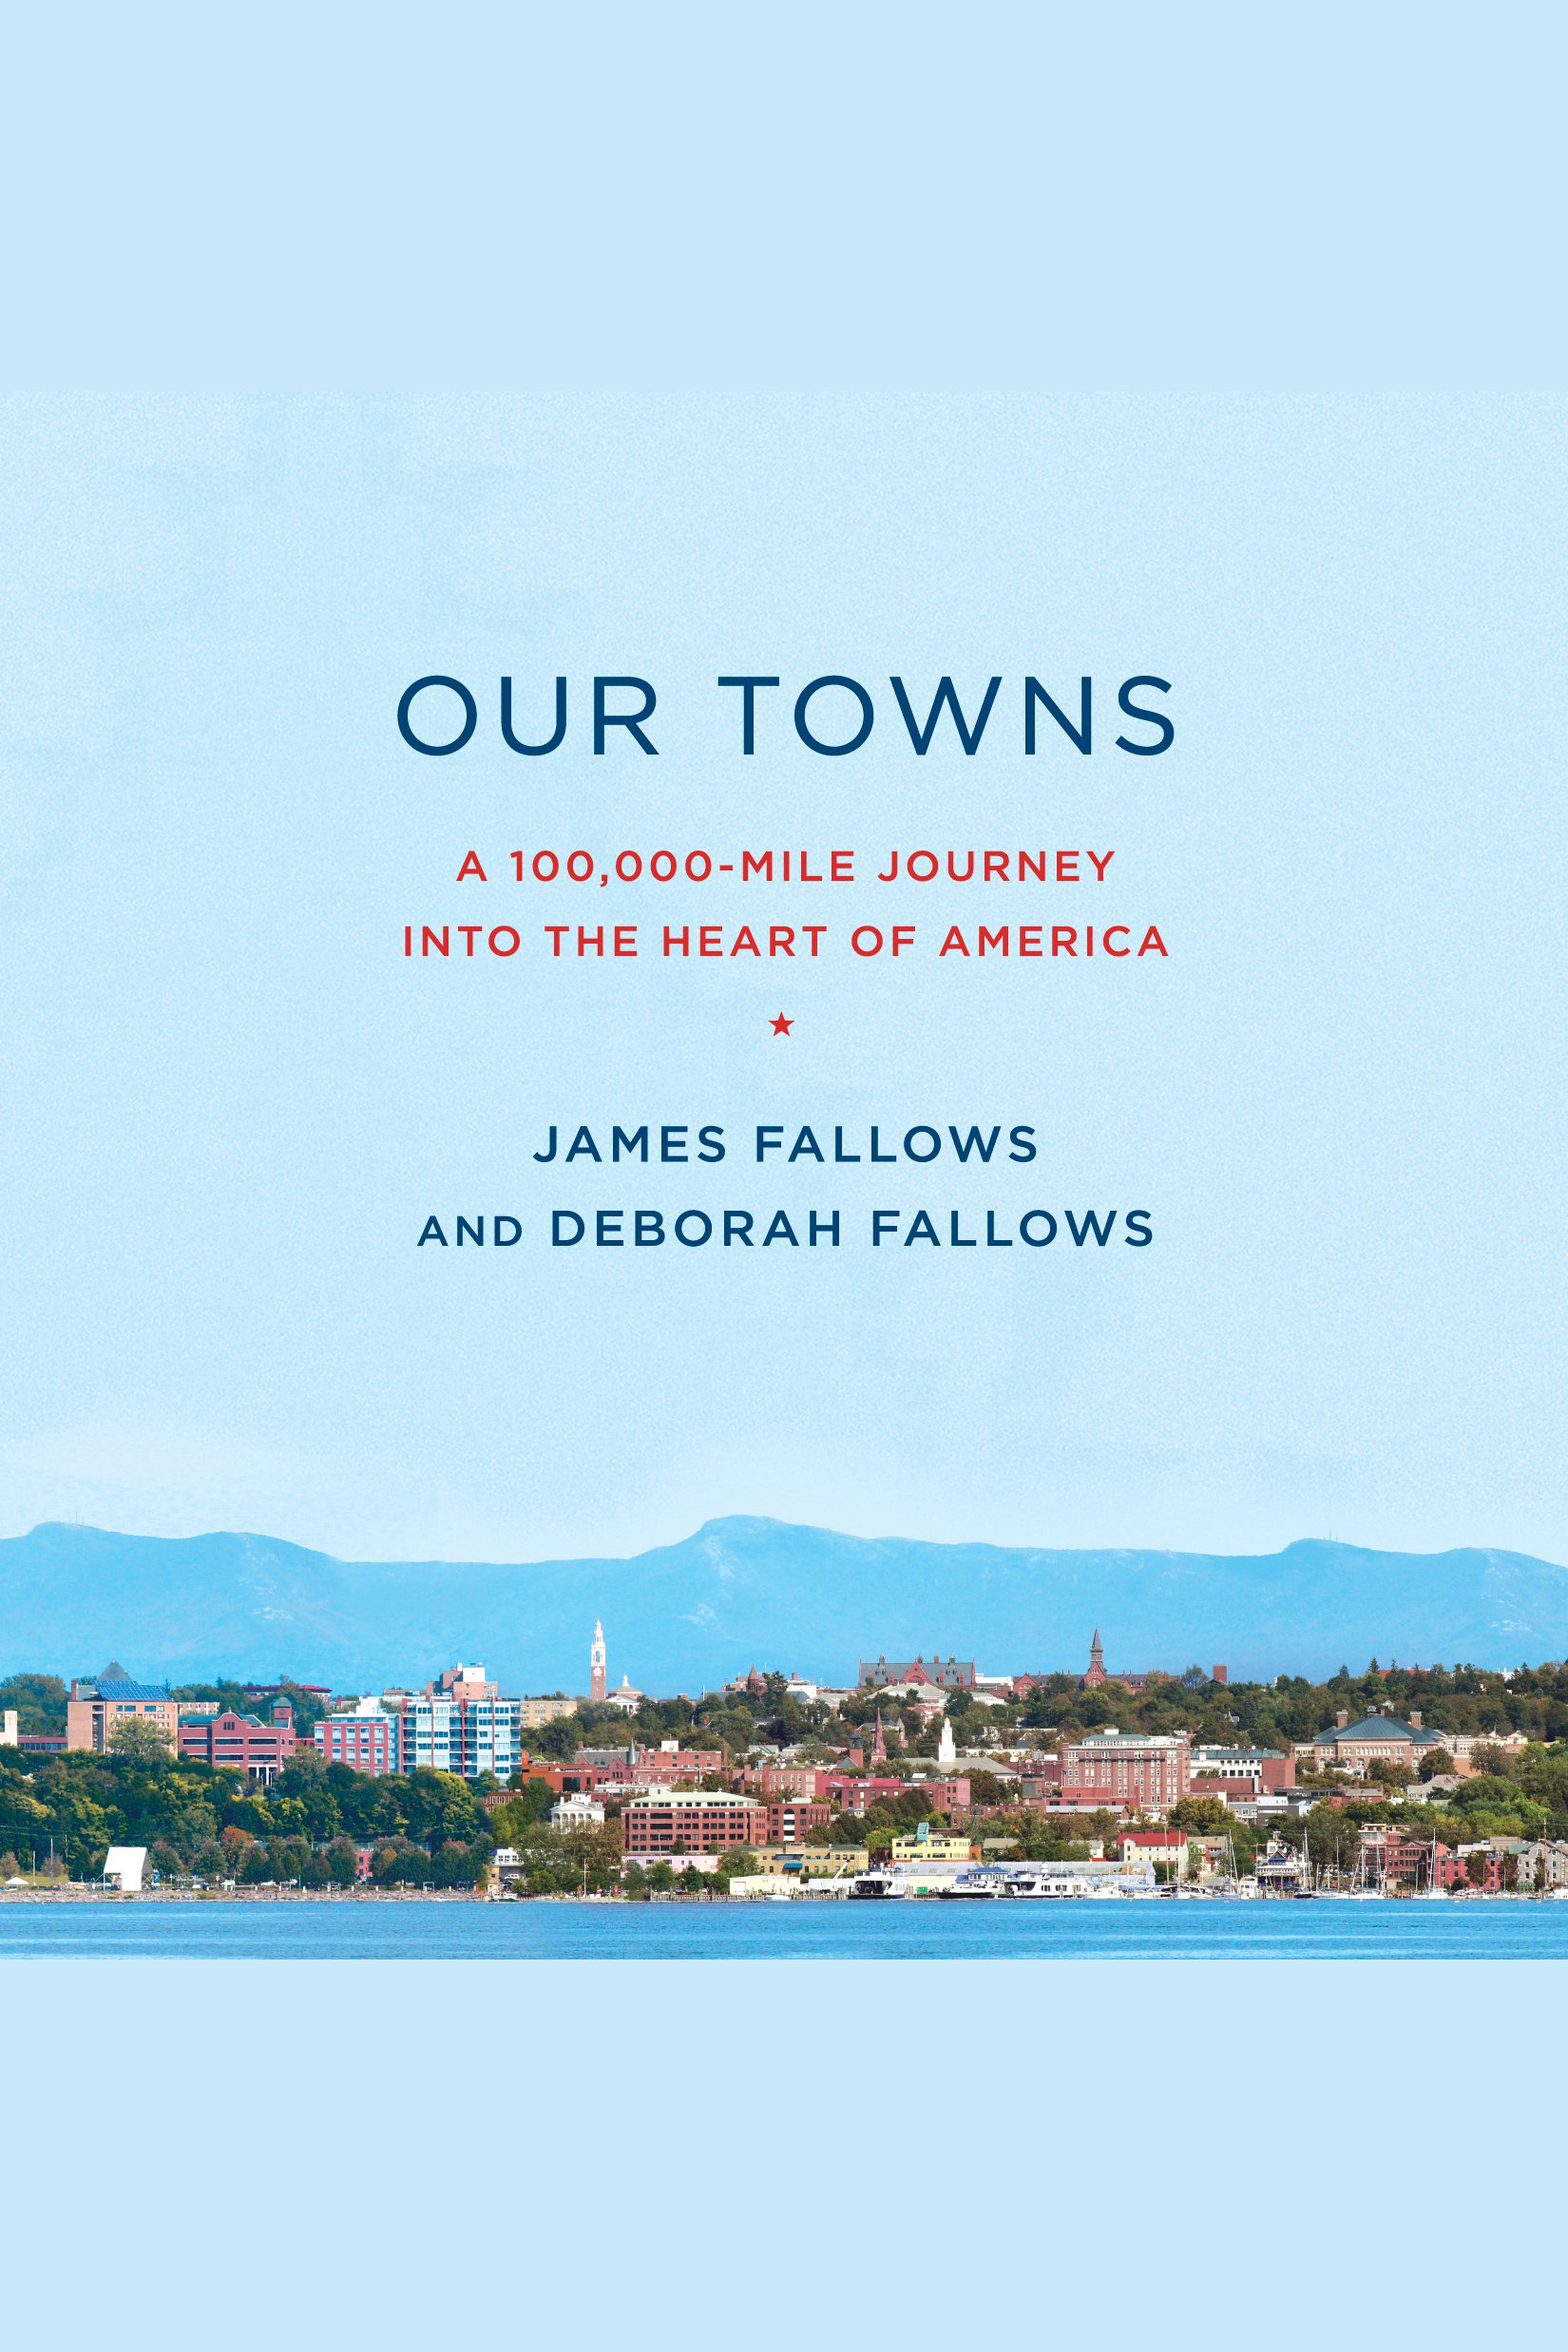 Our Towns A 100,000-Mile Journey into the Heart of America